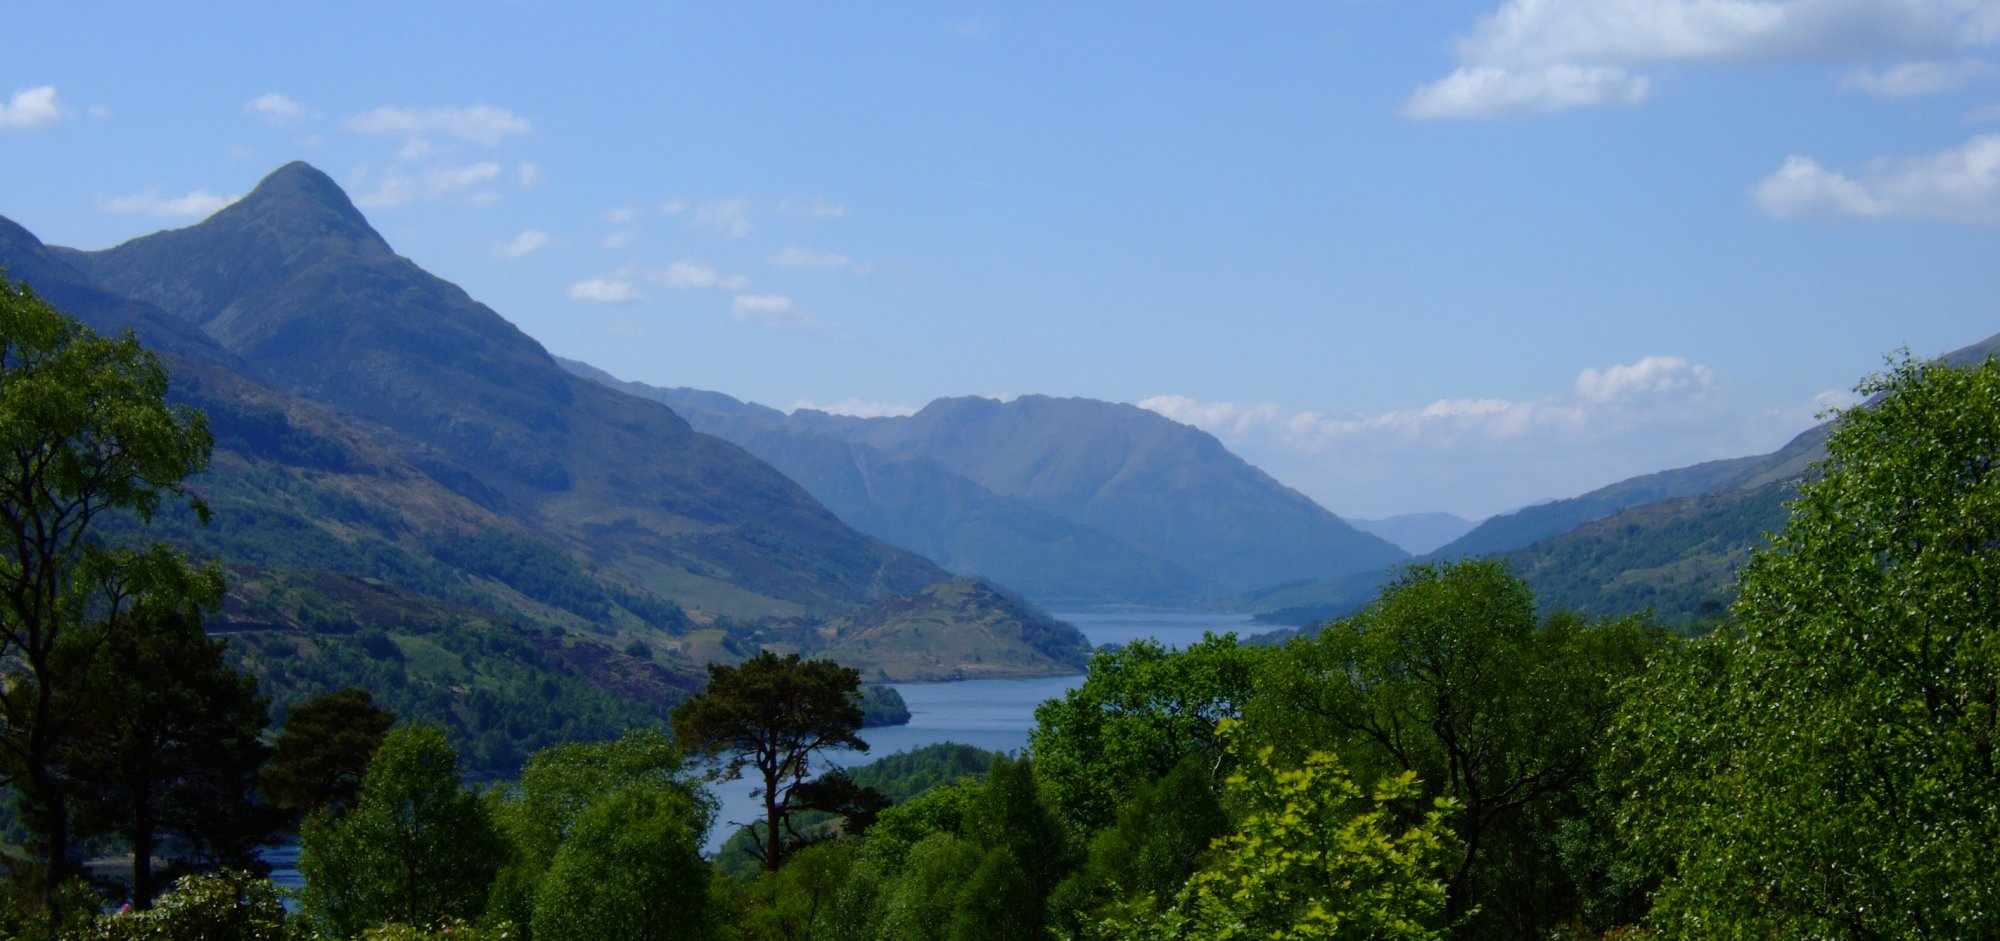 The view down Loch Leven. The Pap of Glencoe and Sgorr Dhearg on the left and Beinn na Caillich on the right